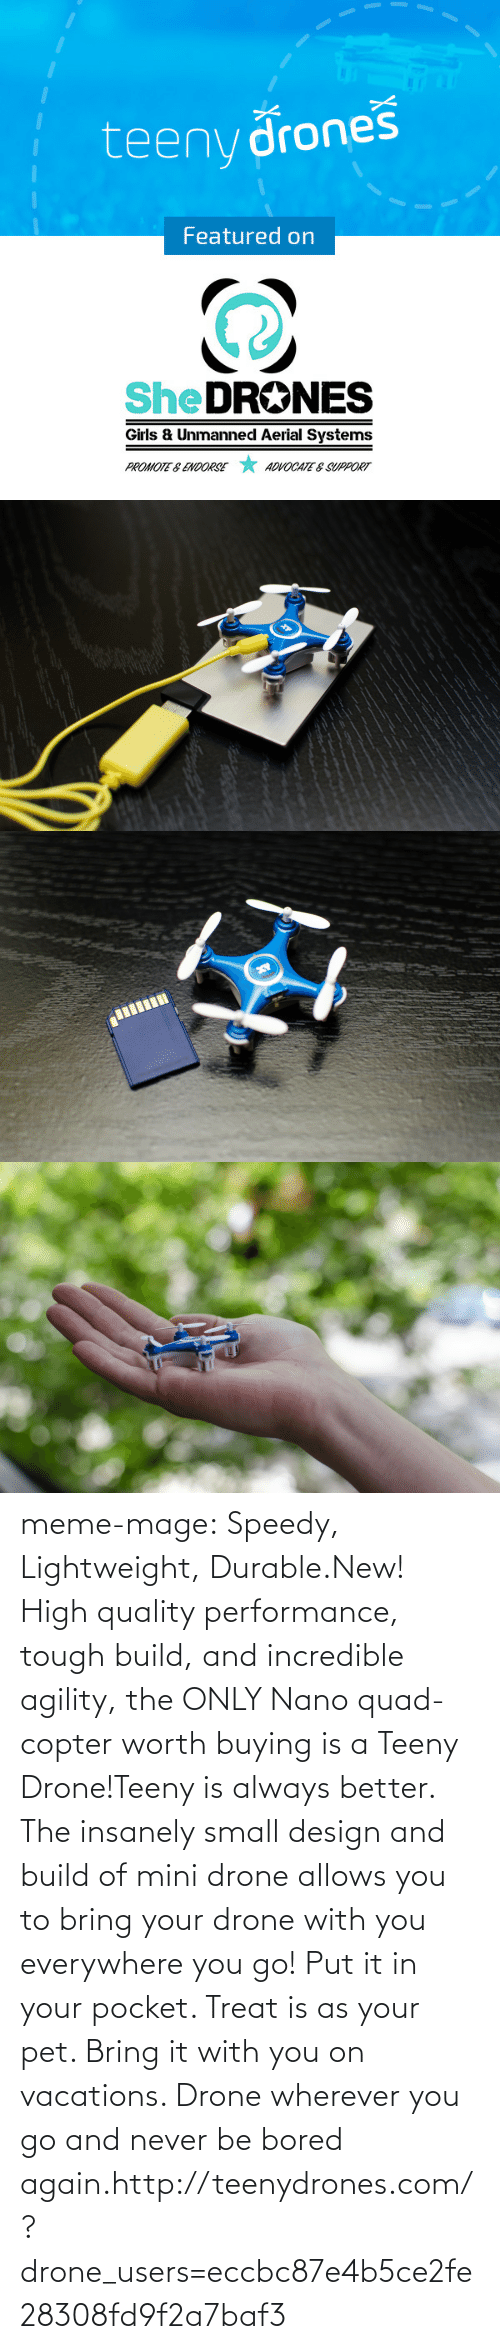 Vacations: teeny drones  Featured on  SheDRONES  Girls & Unmanned Aerial Systems  *  PROMOTE & ENDORSE  ADVOCATE E SUPPORT meme-mage:  Speedy, Lightweight, Durable.New! High quality performance, tough build, and incredible agility, the ONLY Nano quad-copter worth buying is a Teeny Drone!Teeny is always better. The insanely small design and build of mini drone allows you to bring your drone with you everywhere you go! Put it in your pocket. Treat is as your pet. Bring it with you on vacations. Drone wherever you go and never be bored again.http://teenydrones.com/?drone_users=eccbc87e4b5ce2fe28308fd9f2a7baf3